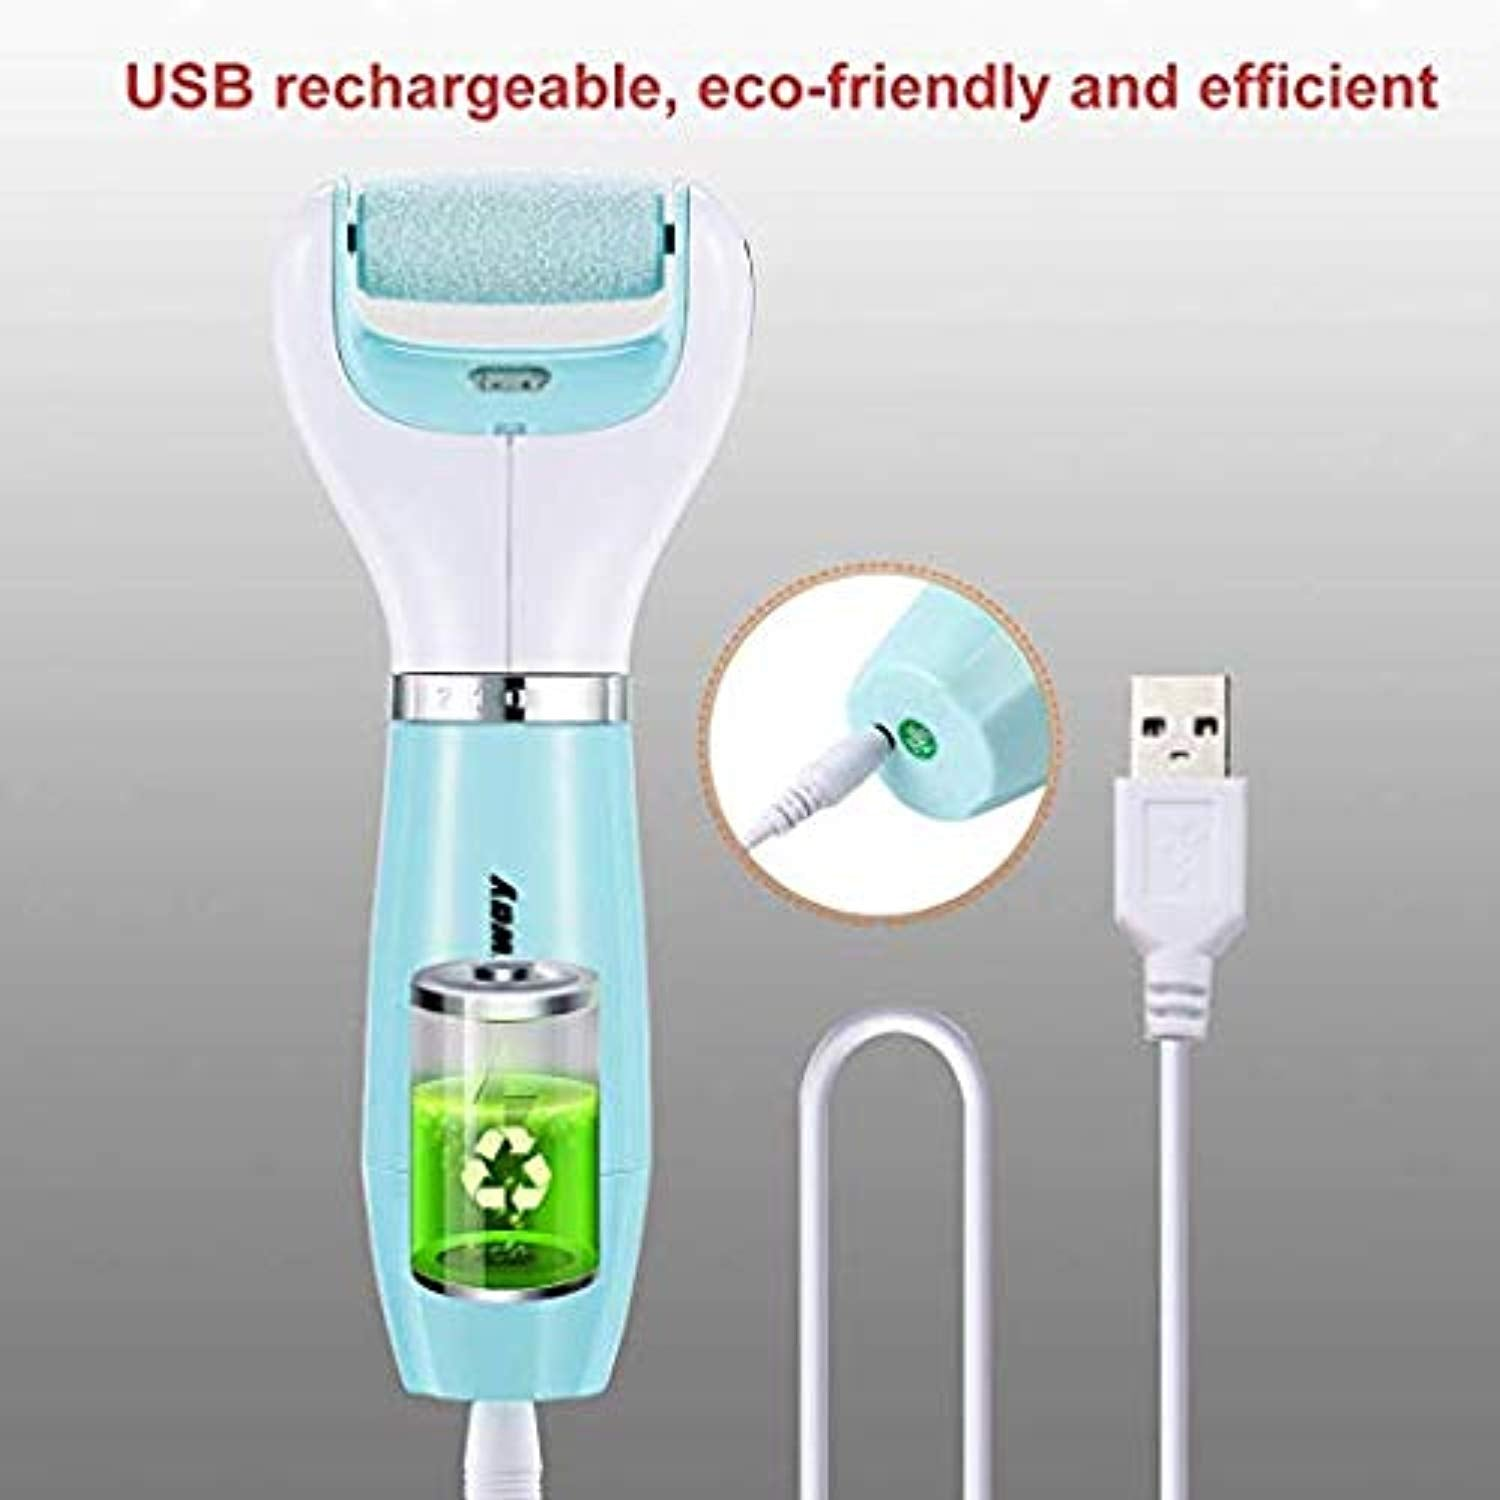 Ankway Professional USB Rechargeable Electric Callus Remover Tool for Men&Women for Remove Dead Rough Cracked Skin, Pedicure Foot Care Tool with 3 Rollers 1 Foot File